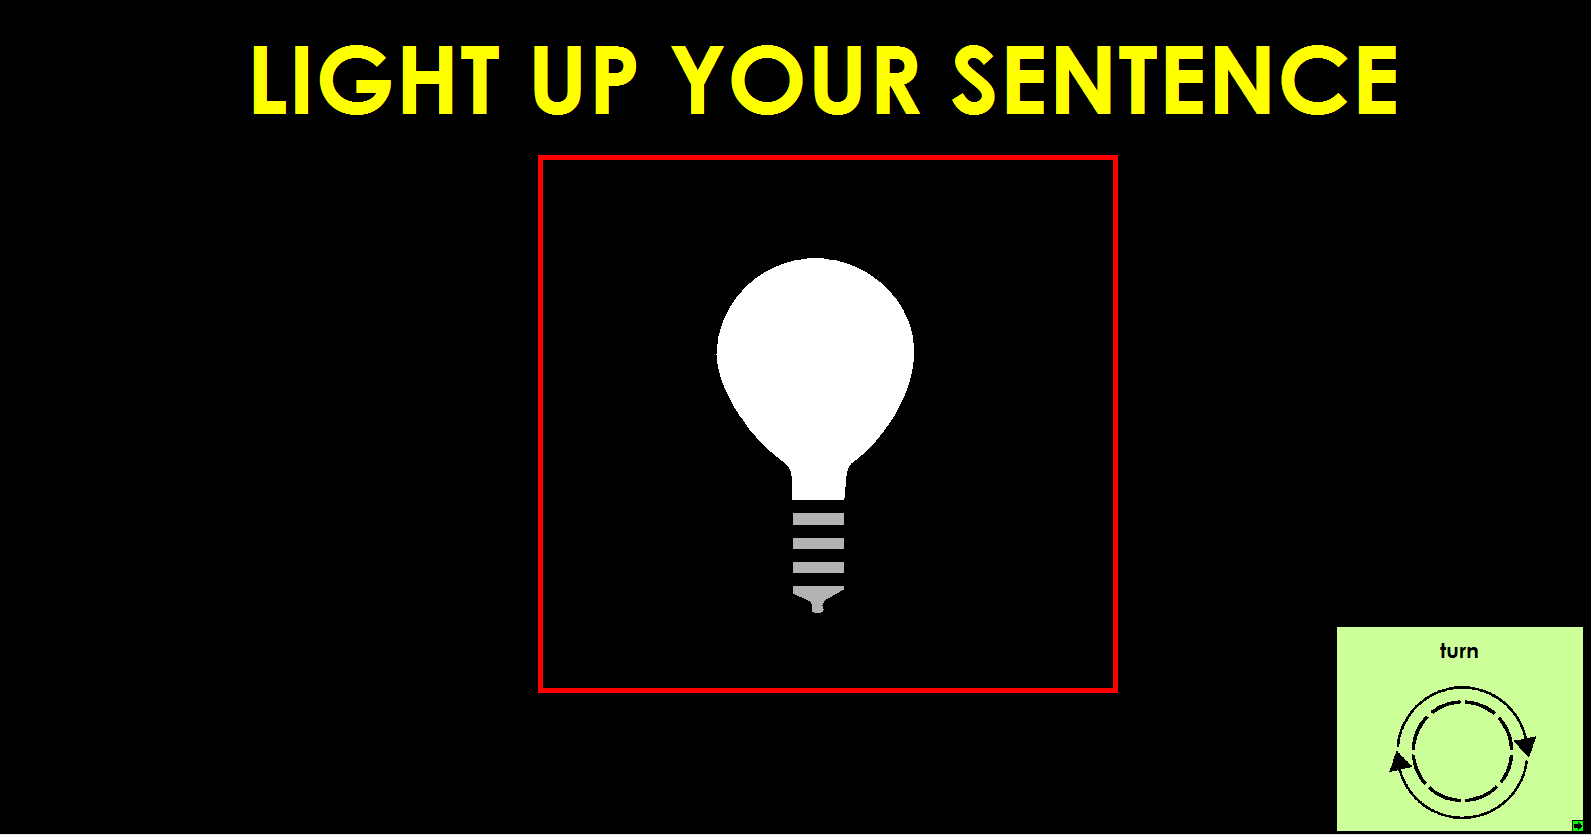 Light Up Your Sentence 1